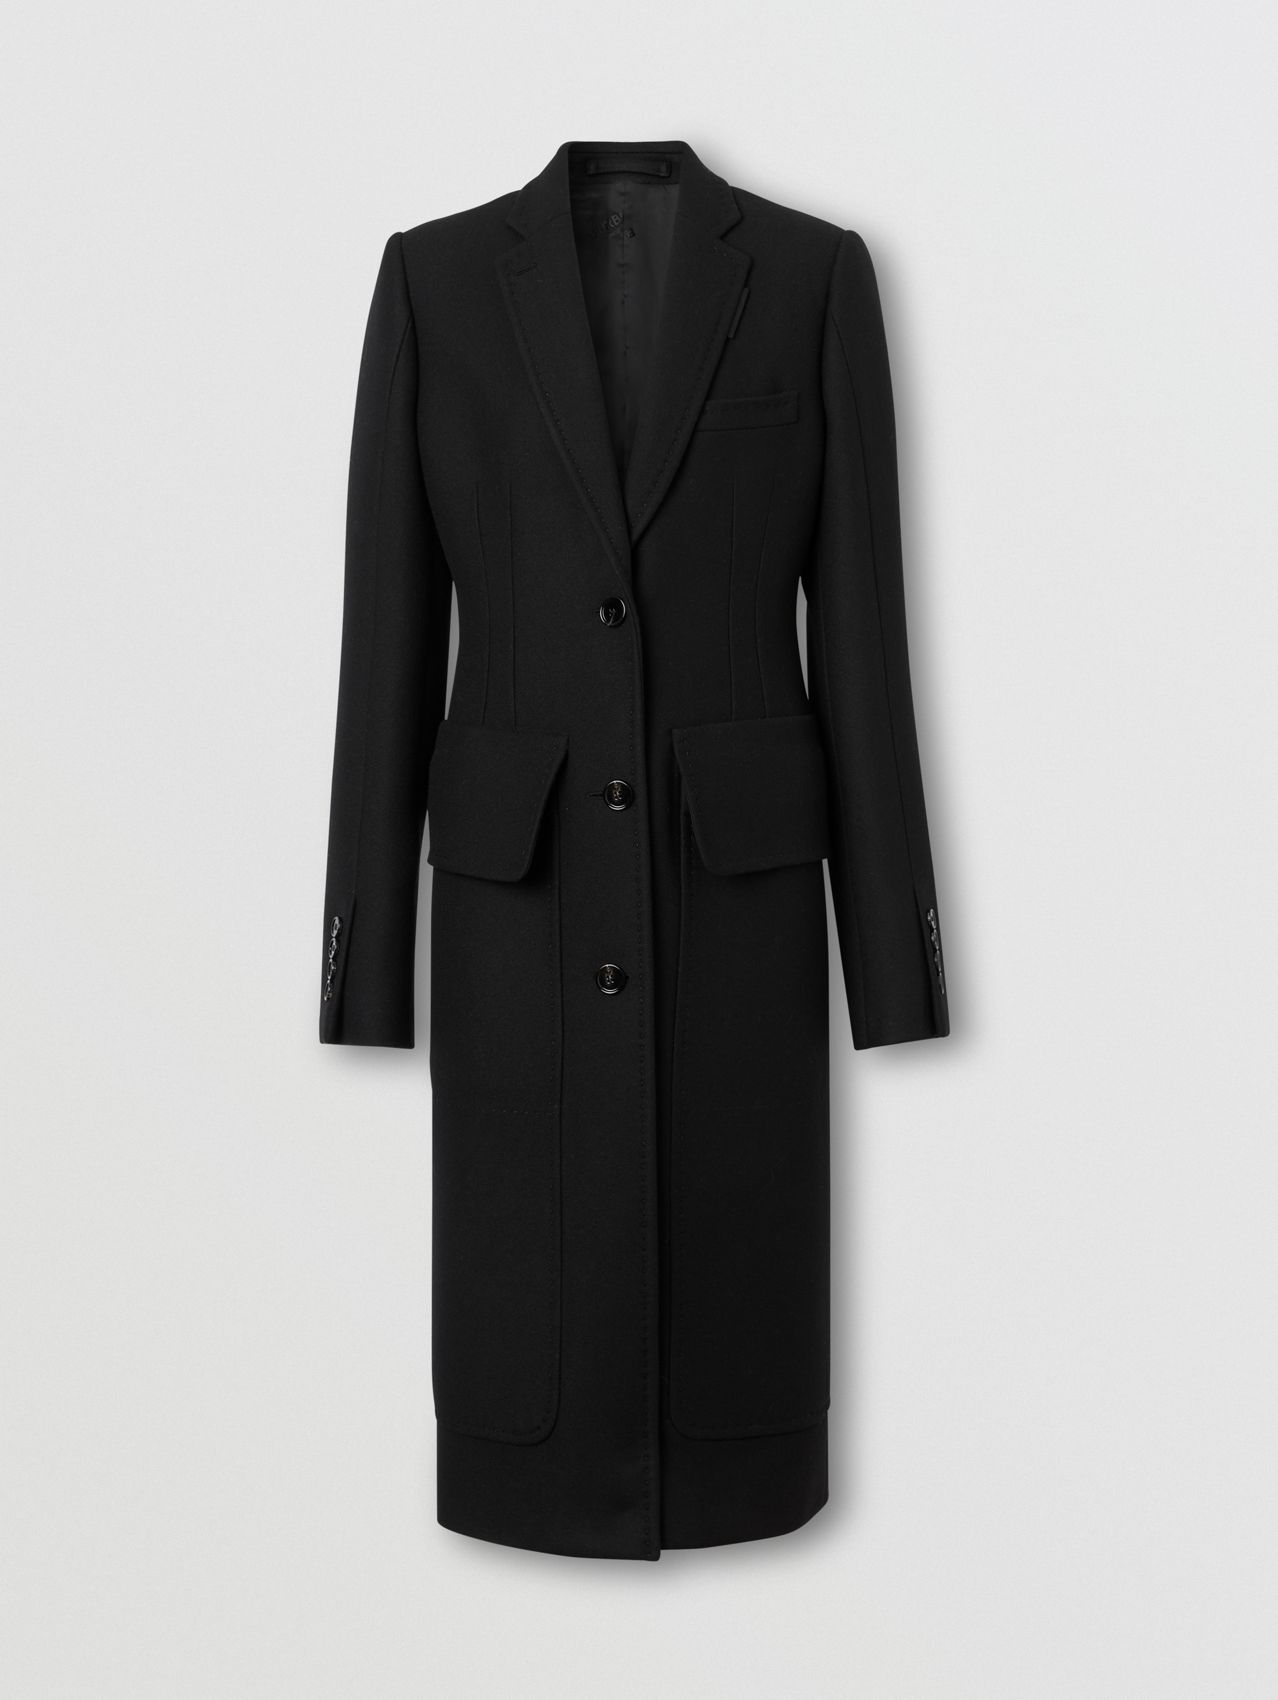 Camel Hair Wool Tailored Coat in Black